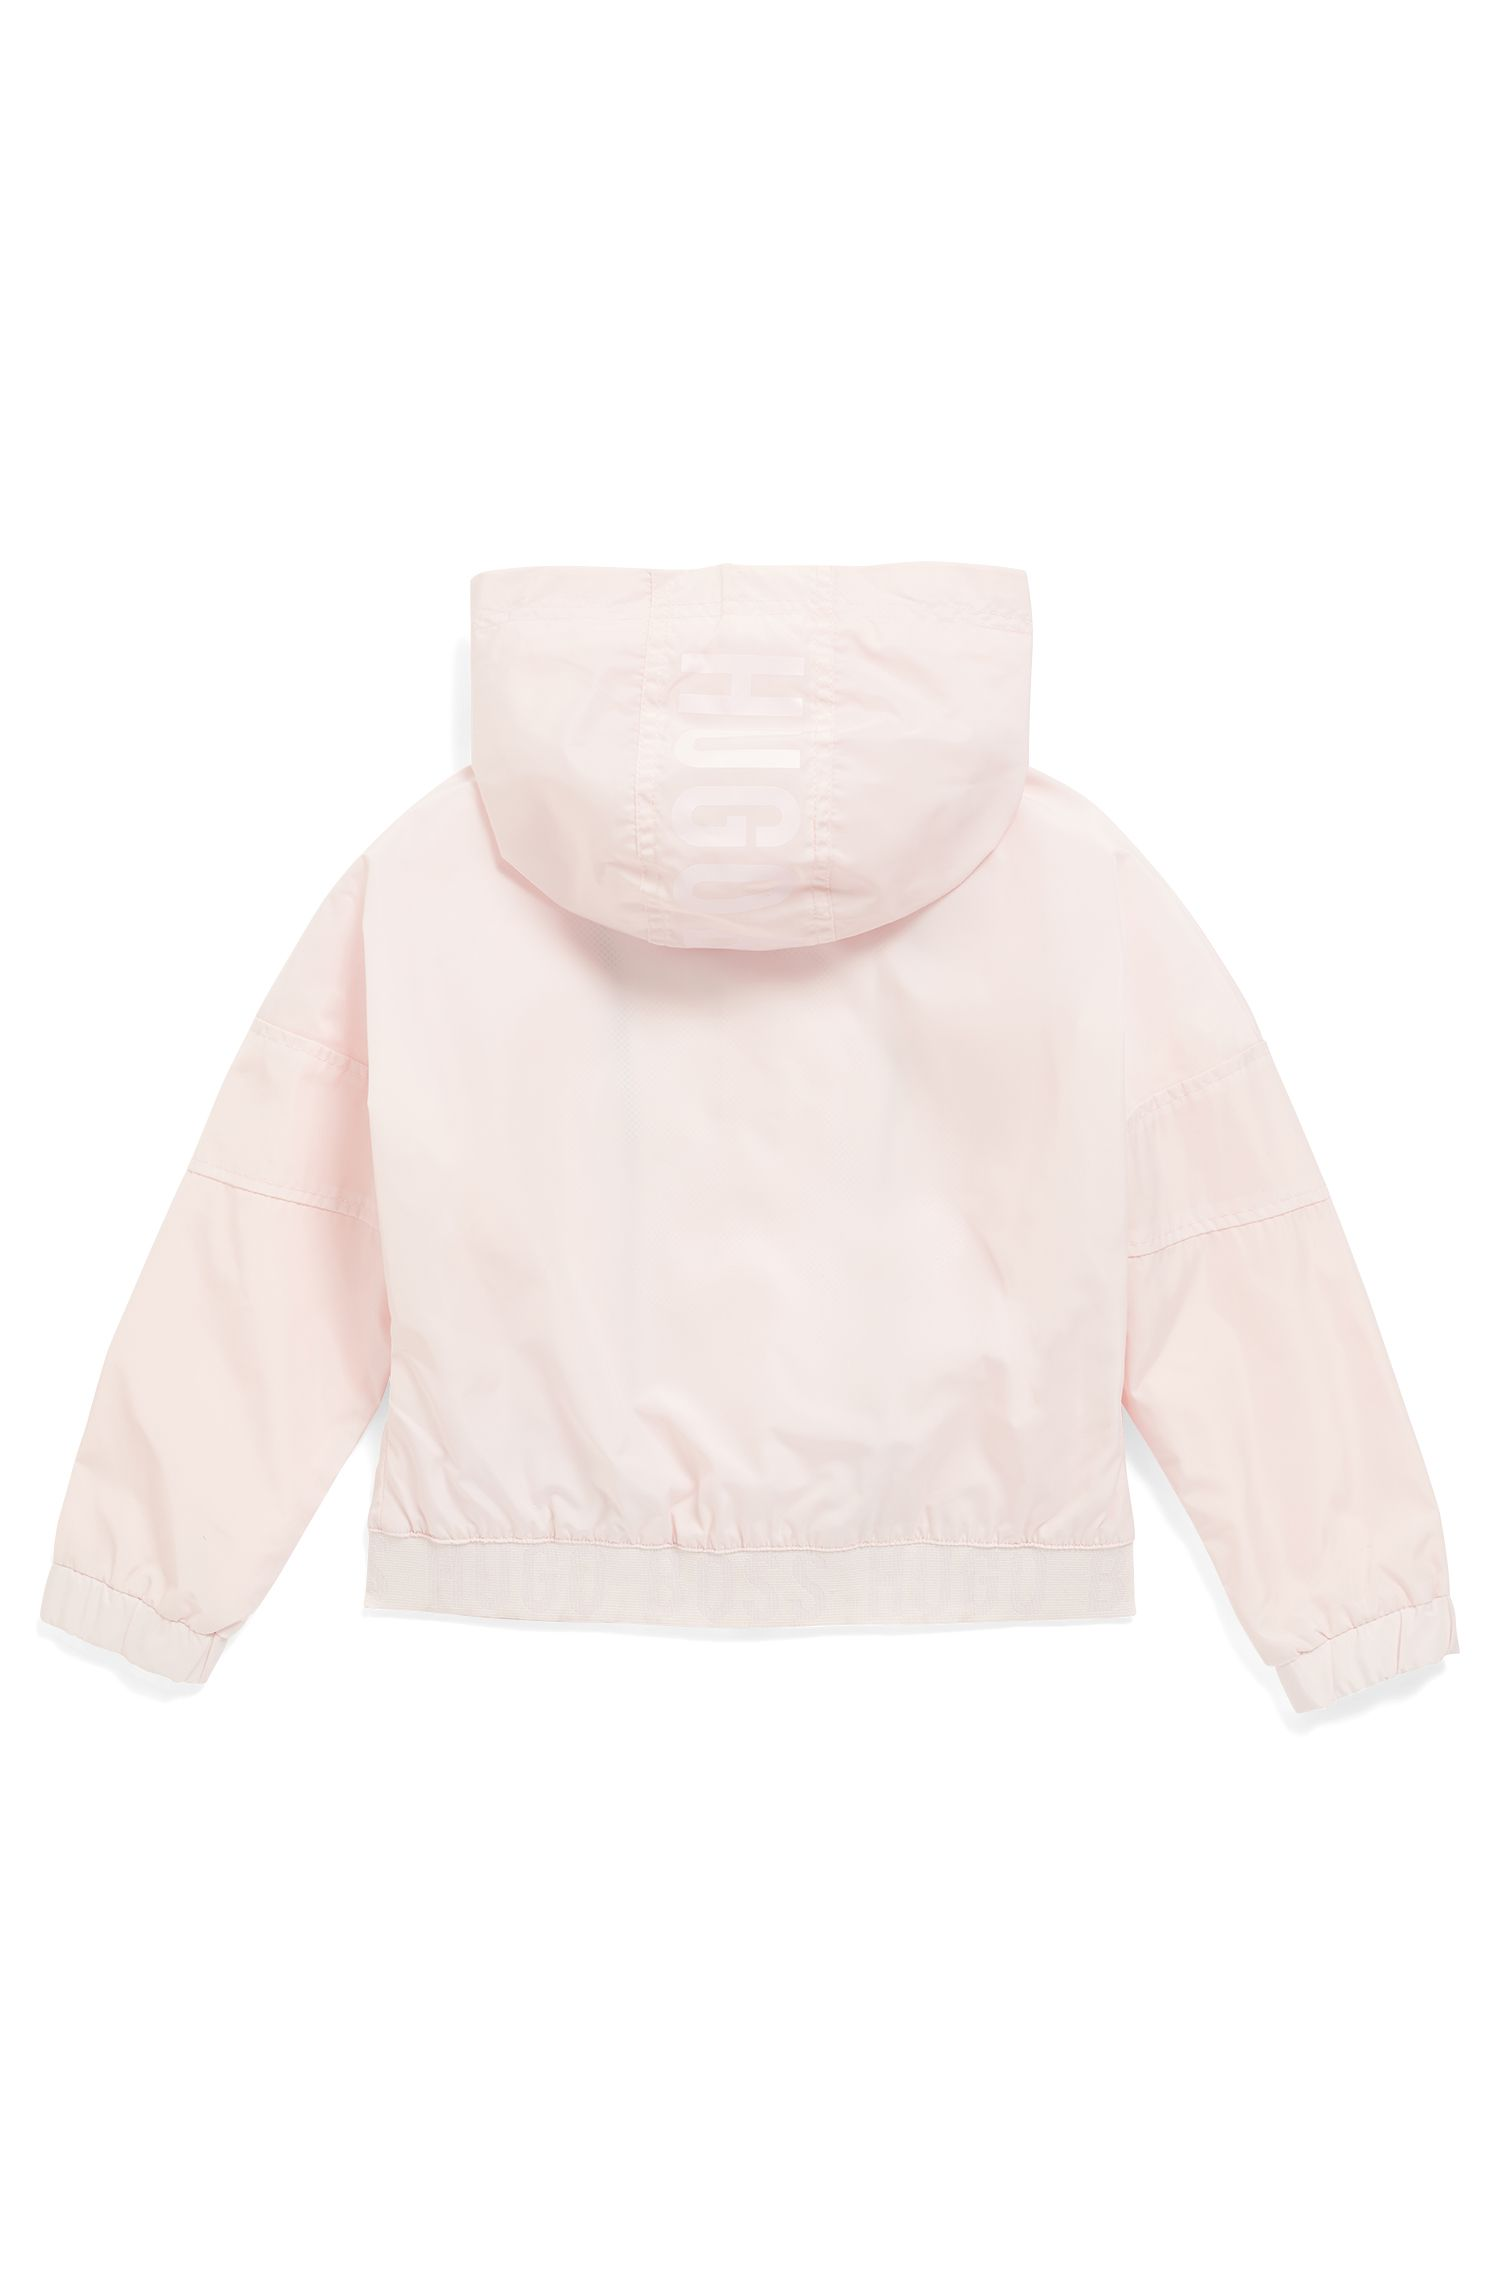 Kids' hooded windbreaker in water-repellent technical fabric, light pink